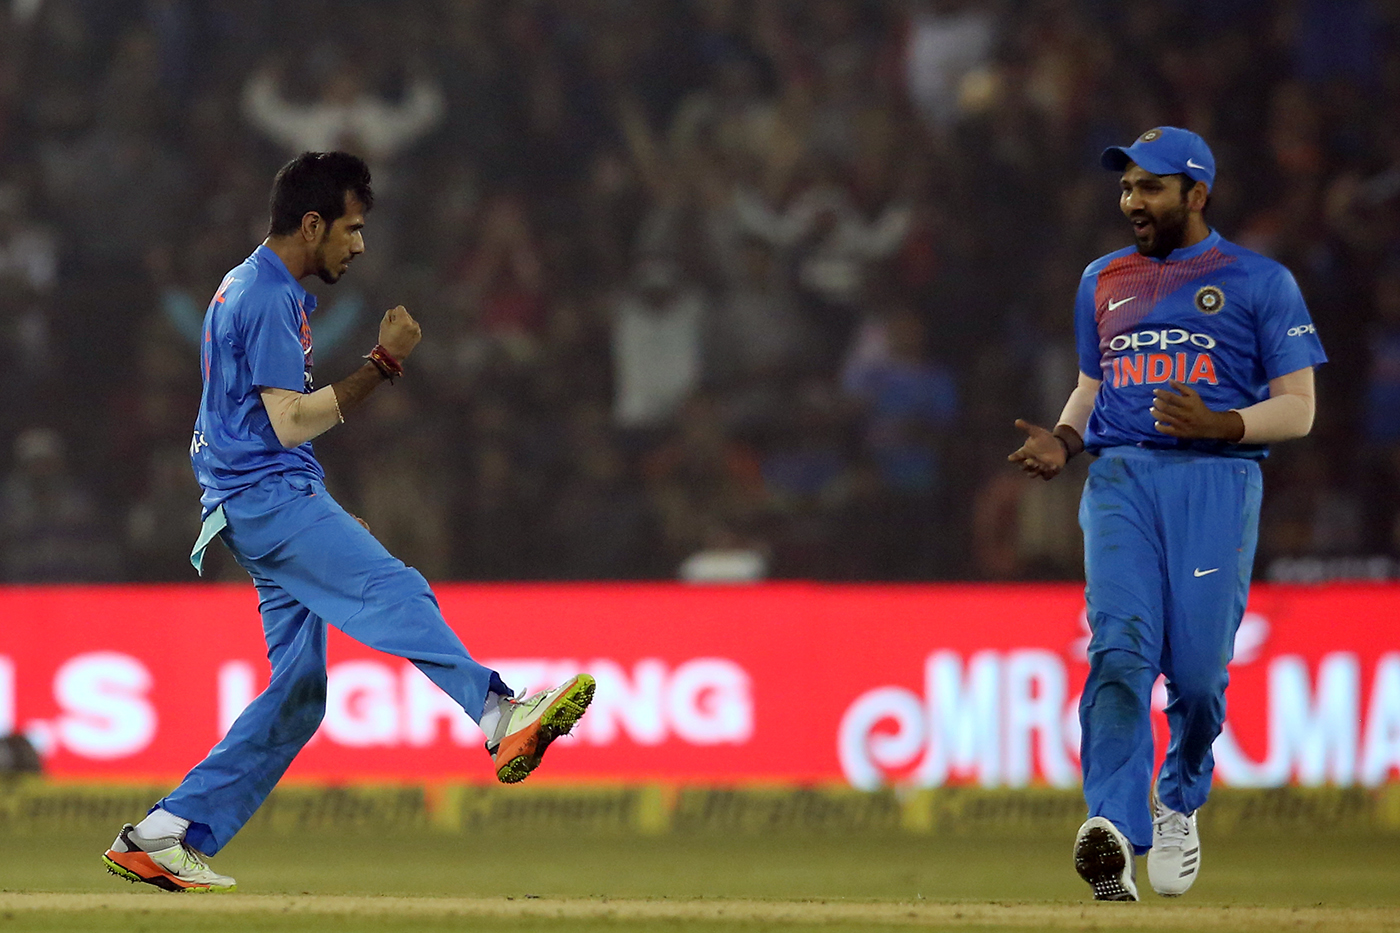 IND vs SL, 1st T20I: MS Dhoni Is A Match-Winner And He Will Always Be One, Says KL Rahul